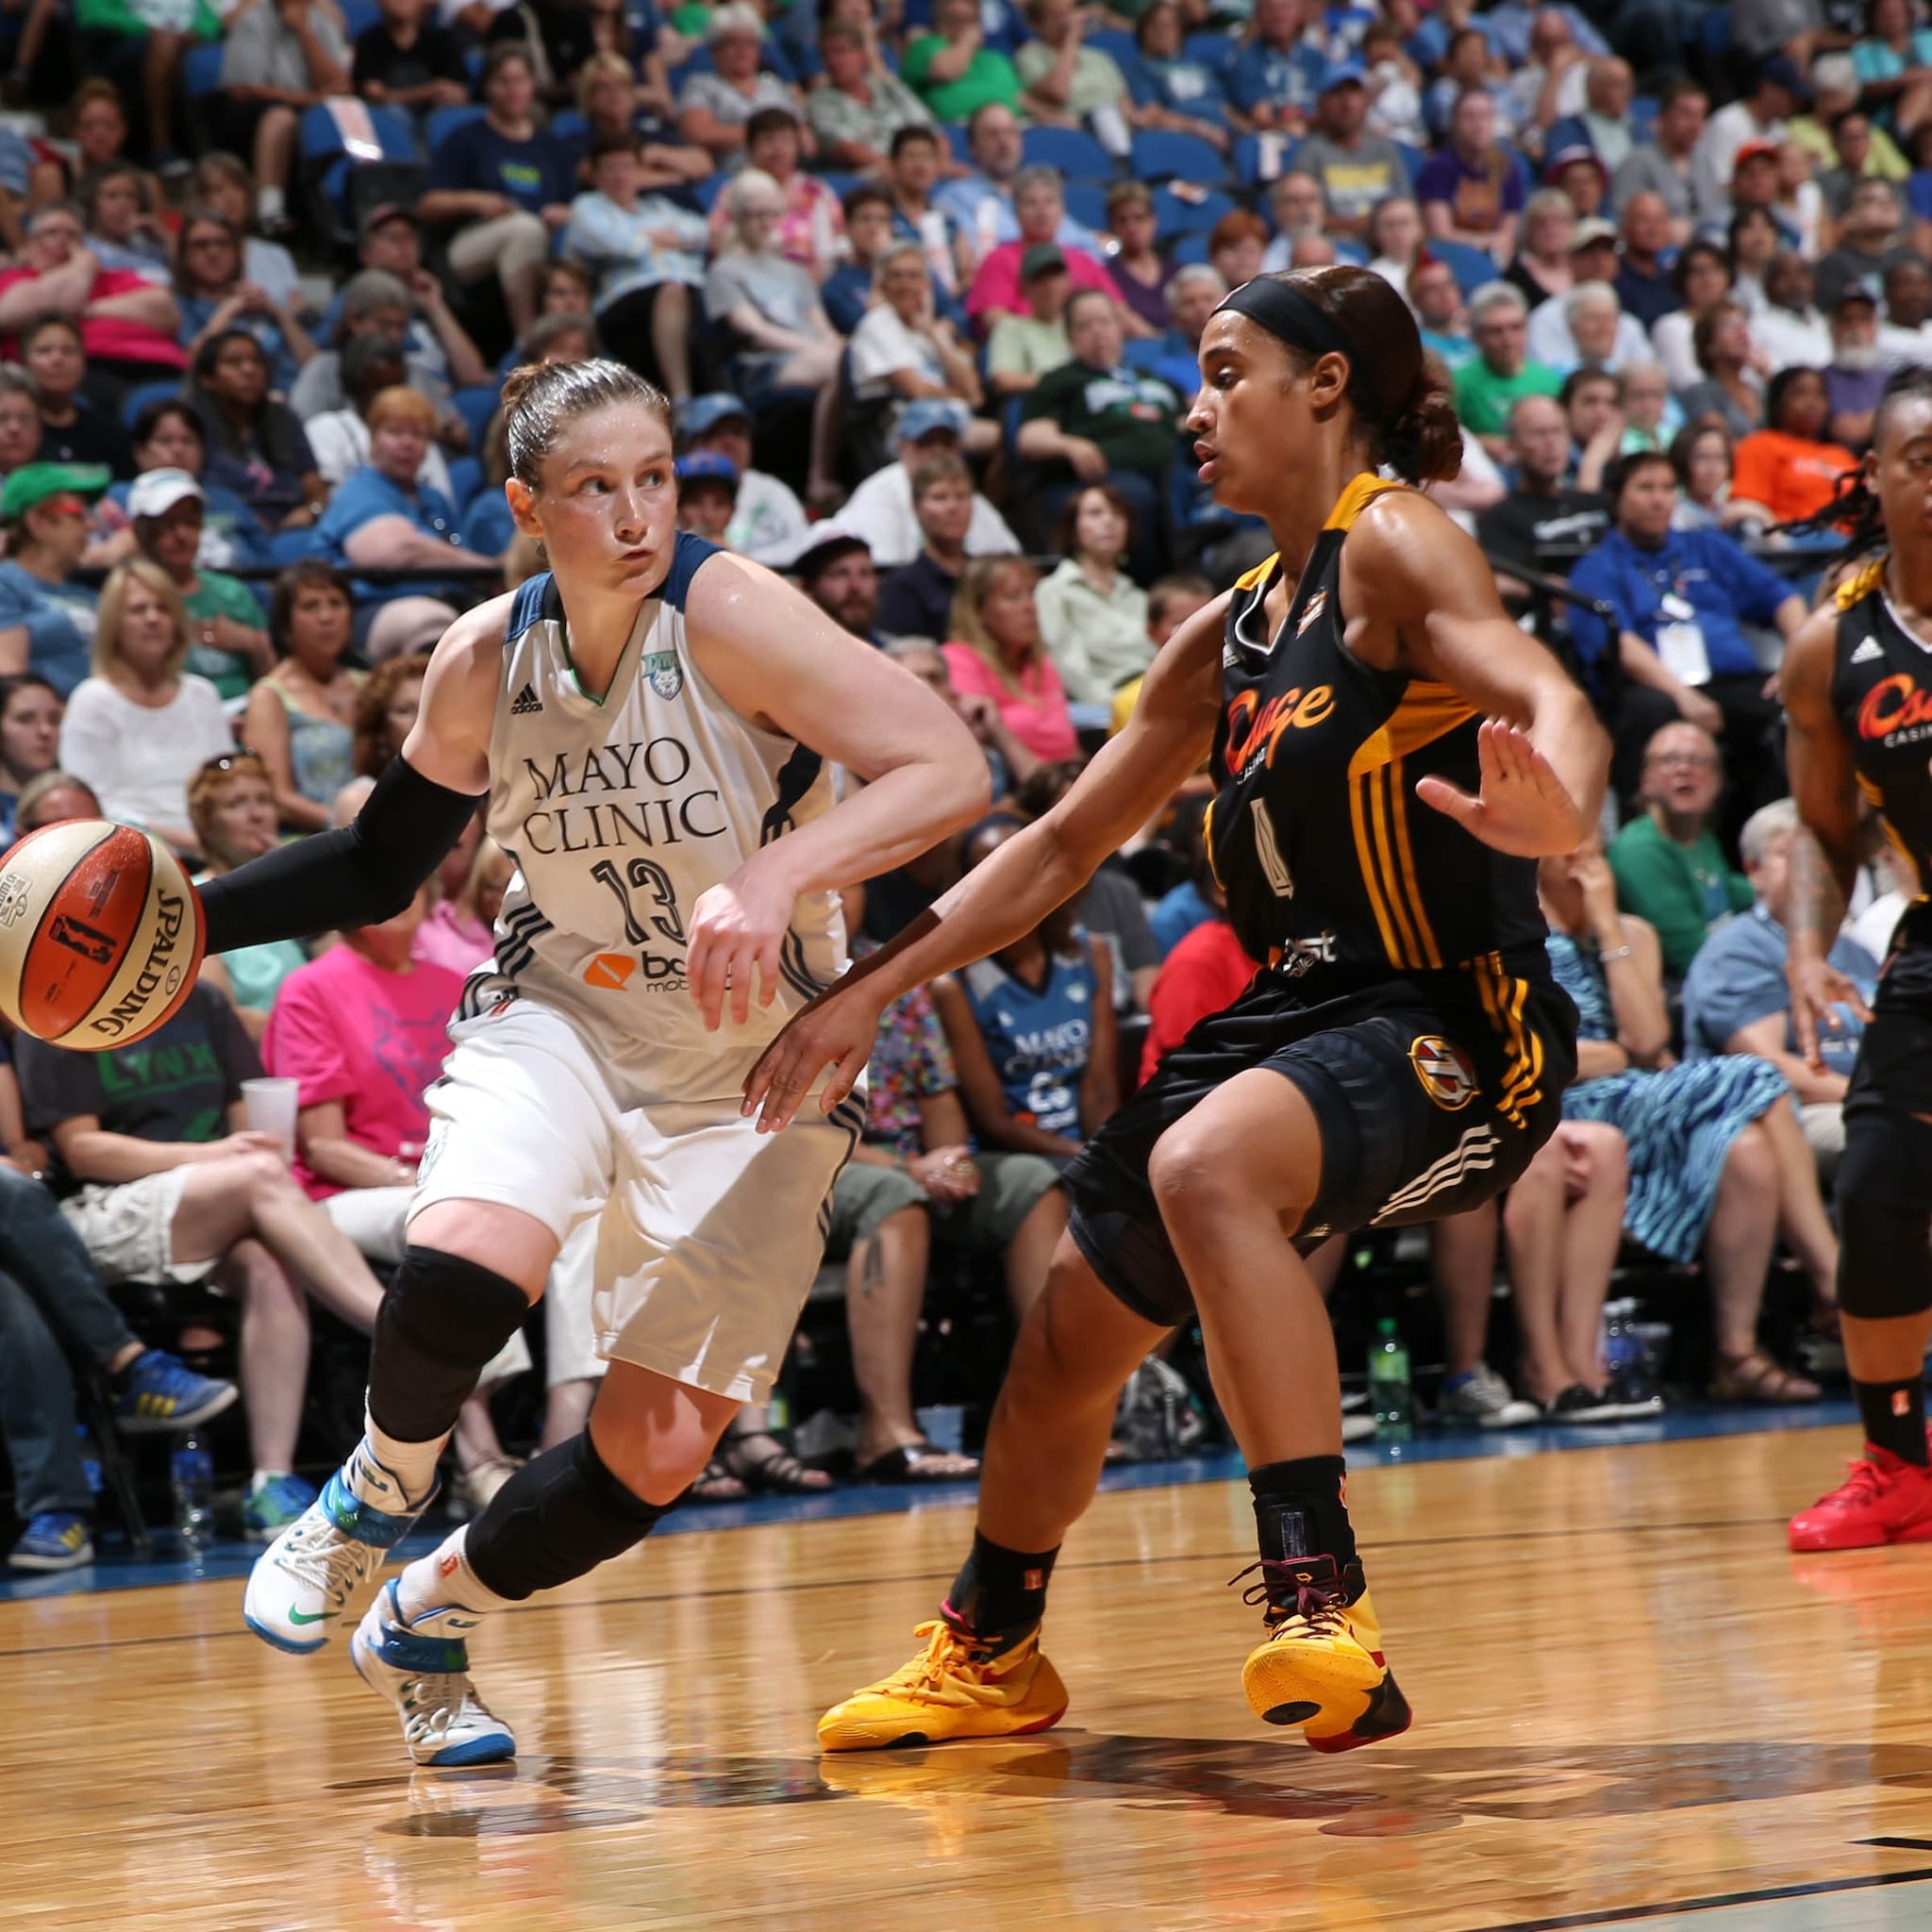 Lynx guard Lindsay Whalen struggled against the Shock, scoring just seven points on 3-of-7 shooting while committing four turnovers.